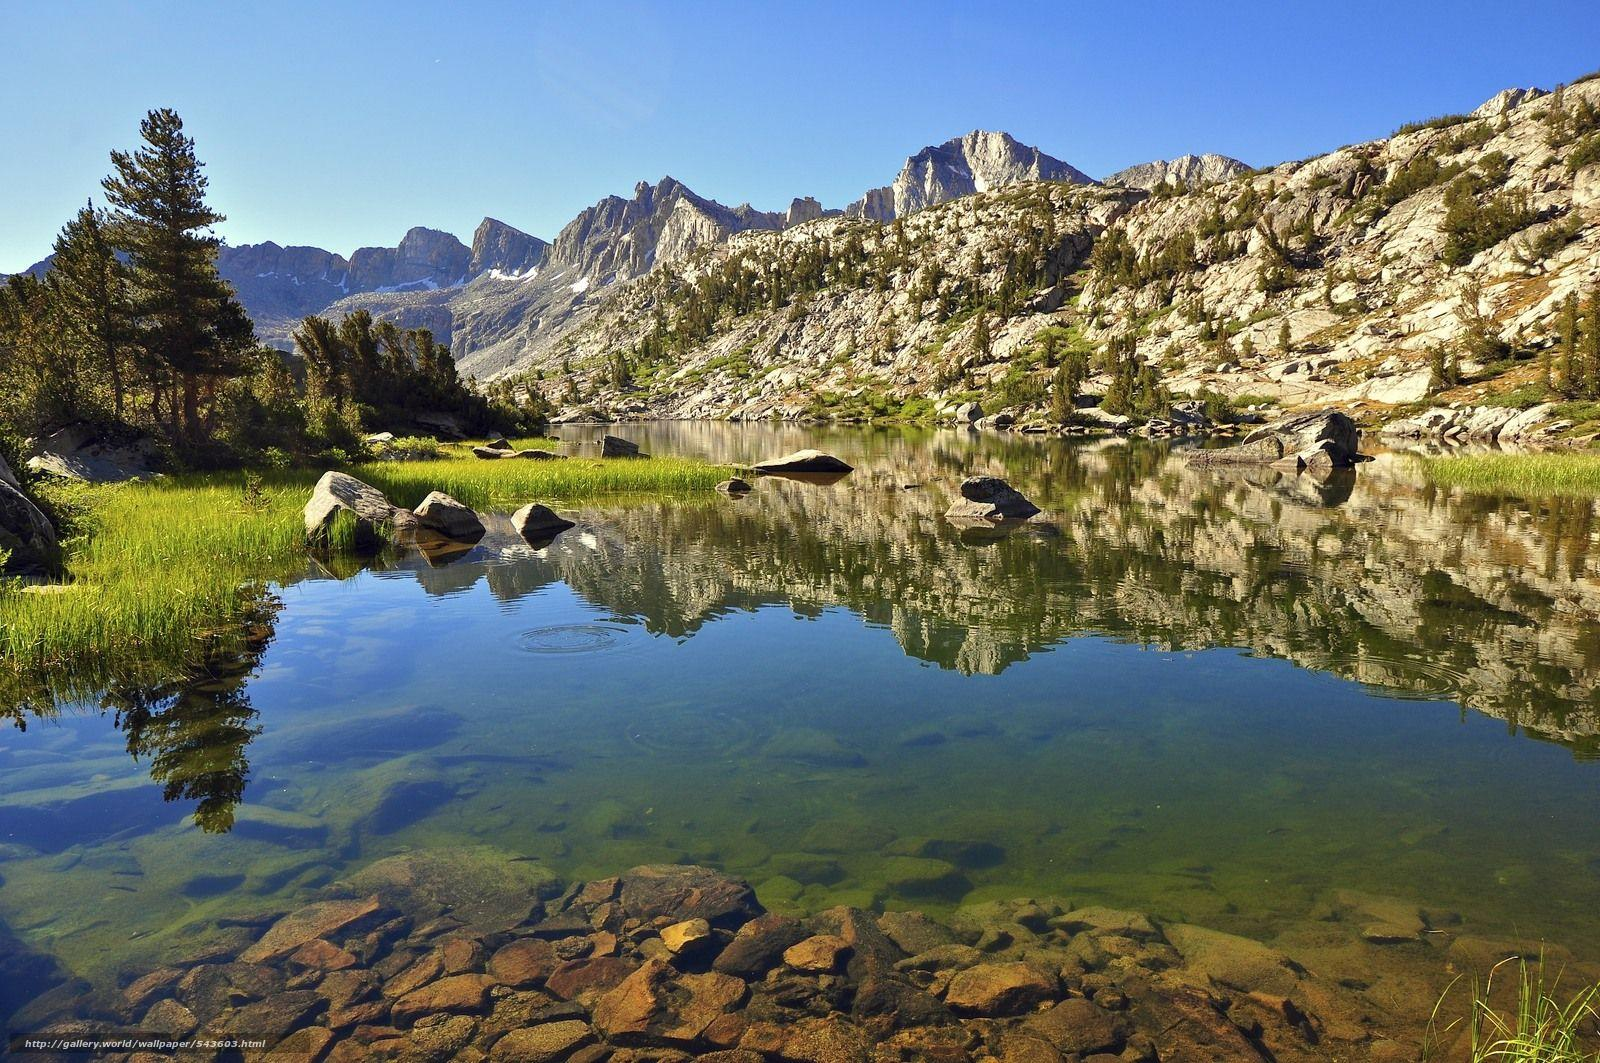 Download wallpapers Unnamed Lake, Dusy Basin, Kings Canyon National